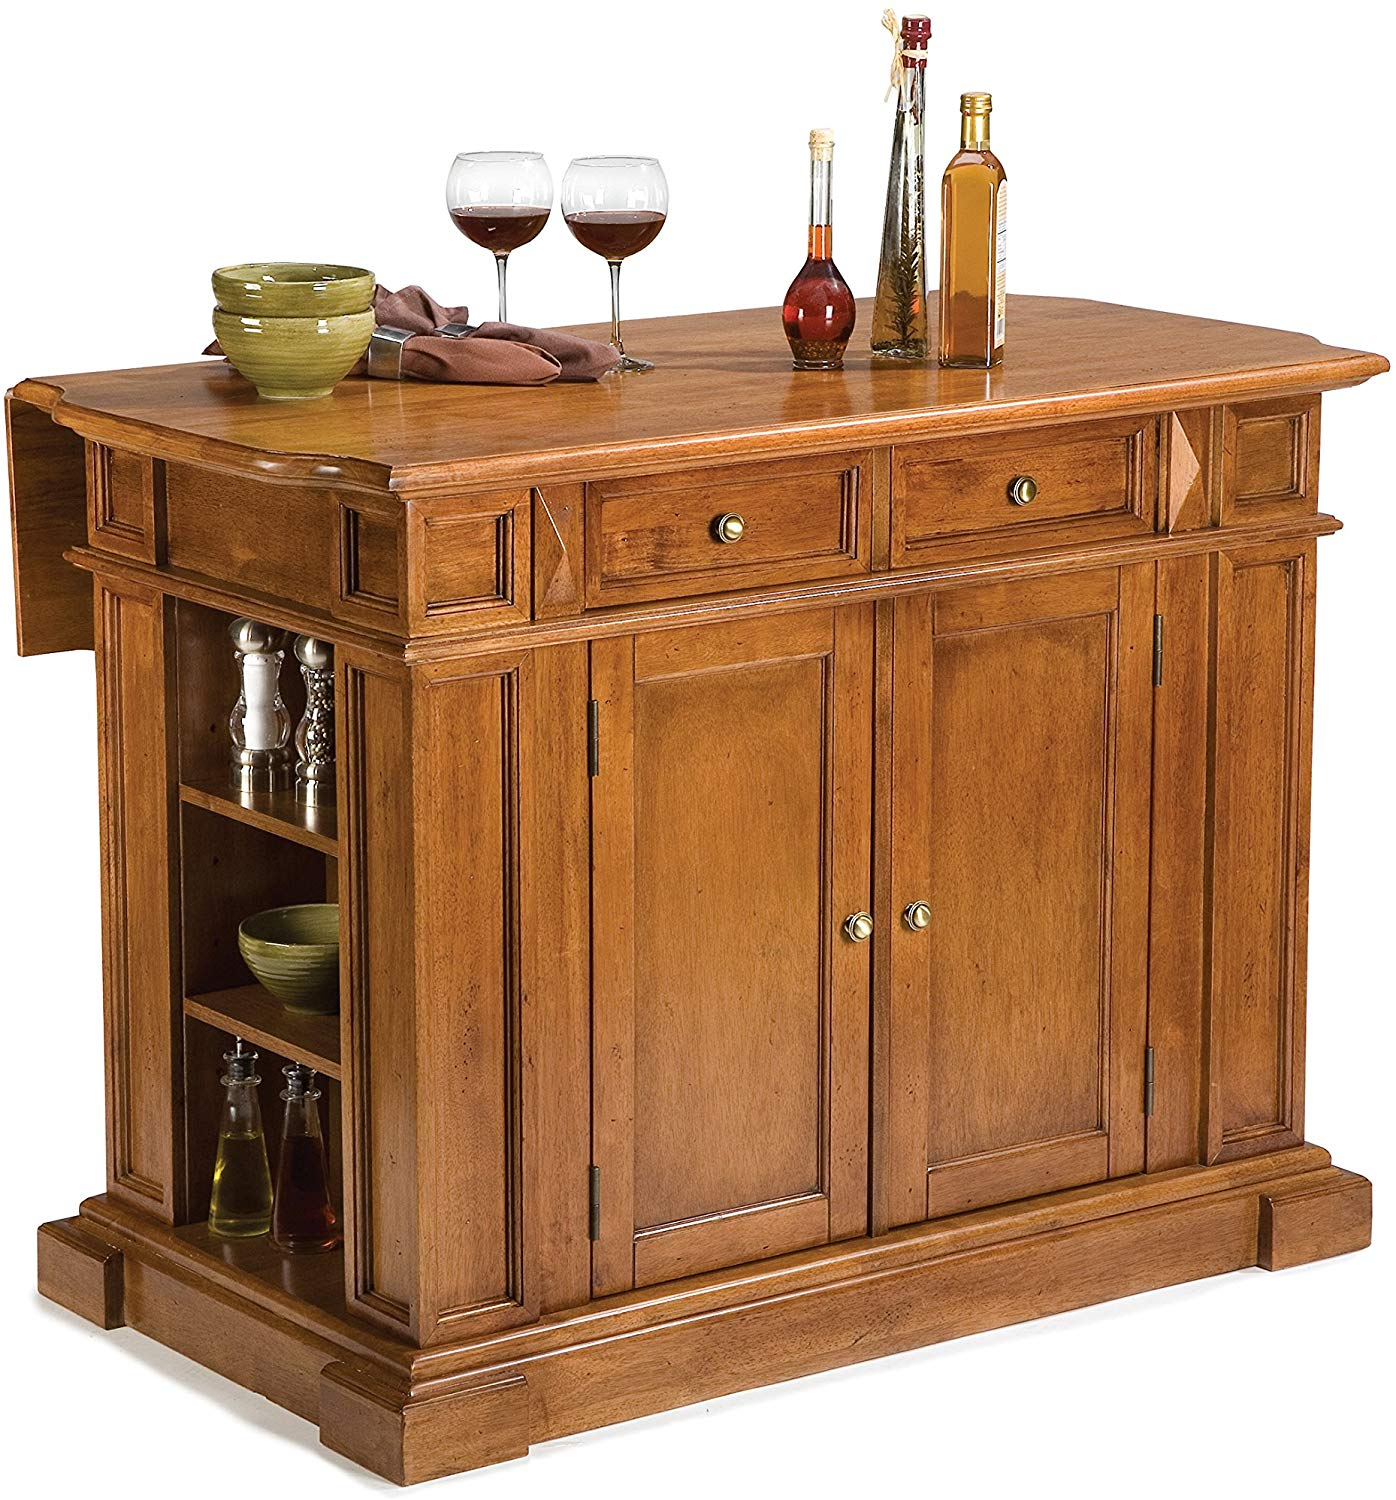 5 Best Kitchen Islands In 2020 Top Rated Kitchen Carts Reviewed